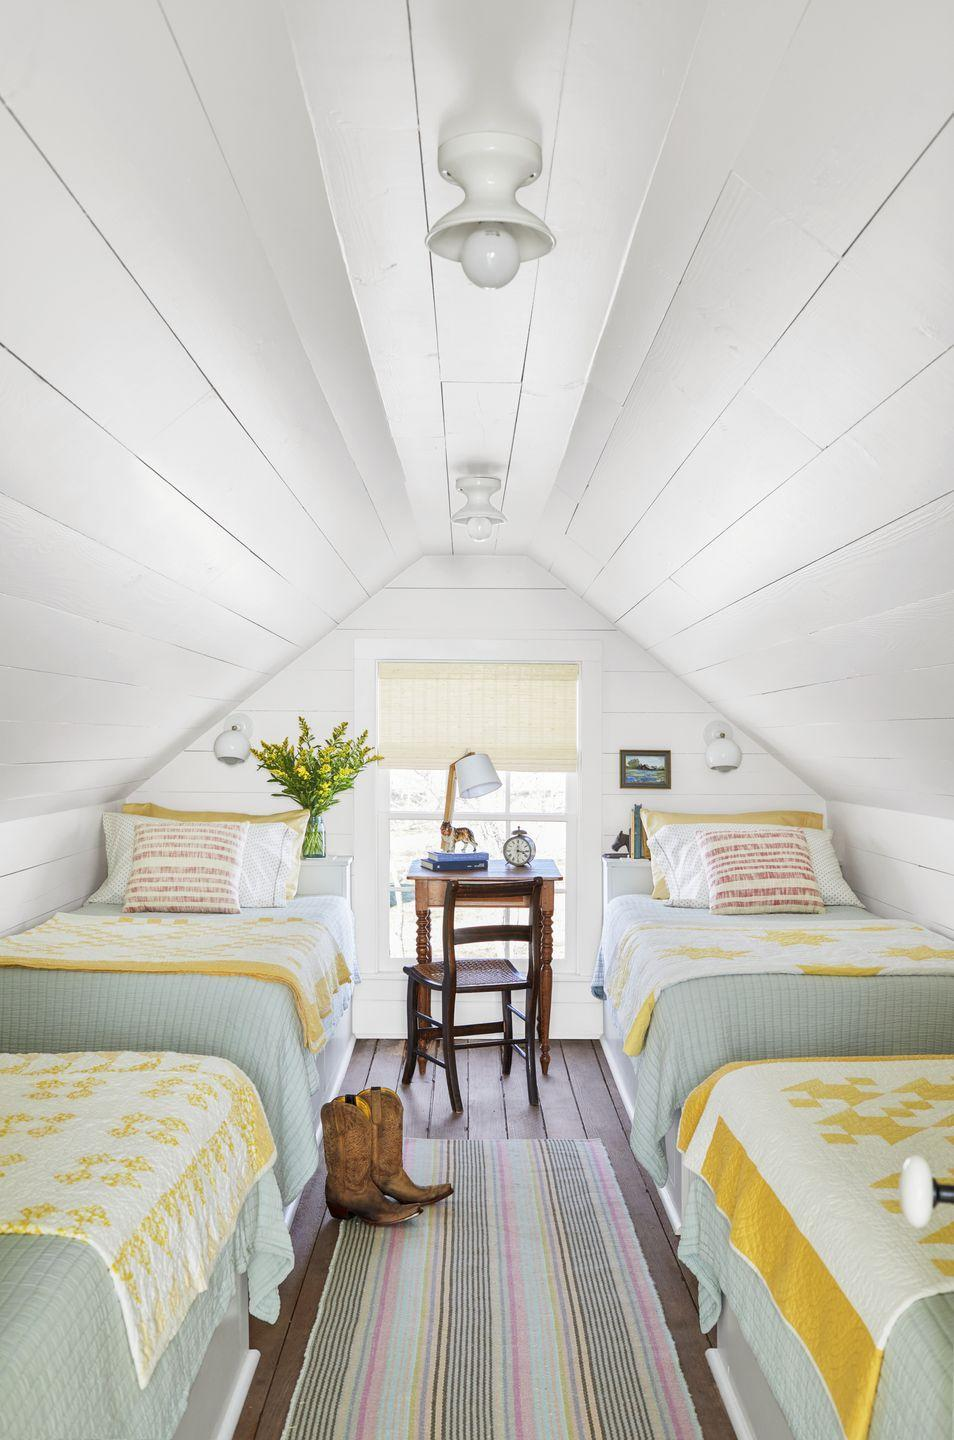 """<p>The easiest way to make a small bedroom look large is to paint everything the same crisp white. The tiny attic bedroom in this Texas farmhouse measures just 170-square-feet, but feels as airy and spacious as a room twice its size. To enhance a small space, keep most furnishings on the light side, but then layer in a few pops of happy color to add personality. <strong><br><br>Get the Look: </strong><br>Wall Paint Color: <a href=""""https://www.sherwin-williams.com/homeowners/color/find-and-explore-colors/paint-colors-by-family/SW7551-greek-villa"""" rel=""""nofollow noopener"""" target=""""_blank"""" data-ylk=""""slk:Greek Villa by Sherwin-Williams"""" class=""""link rapid-noclick-resp"""">Greek Villa by Sherwin-Williams</a></p>"""